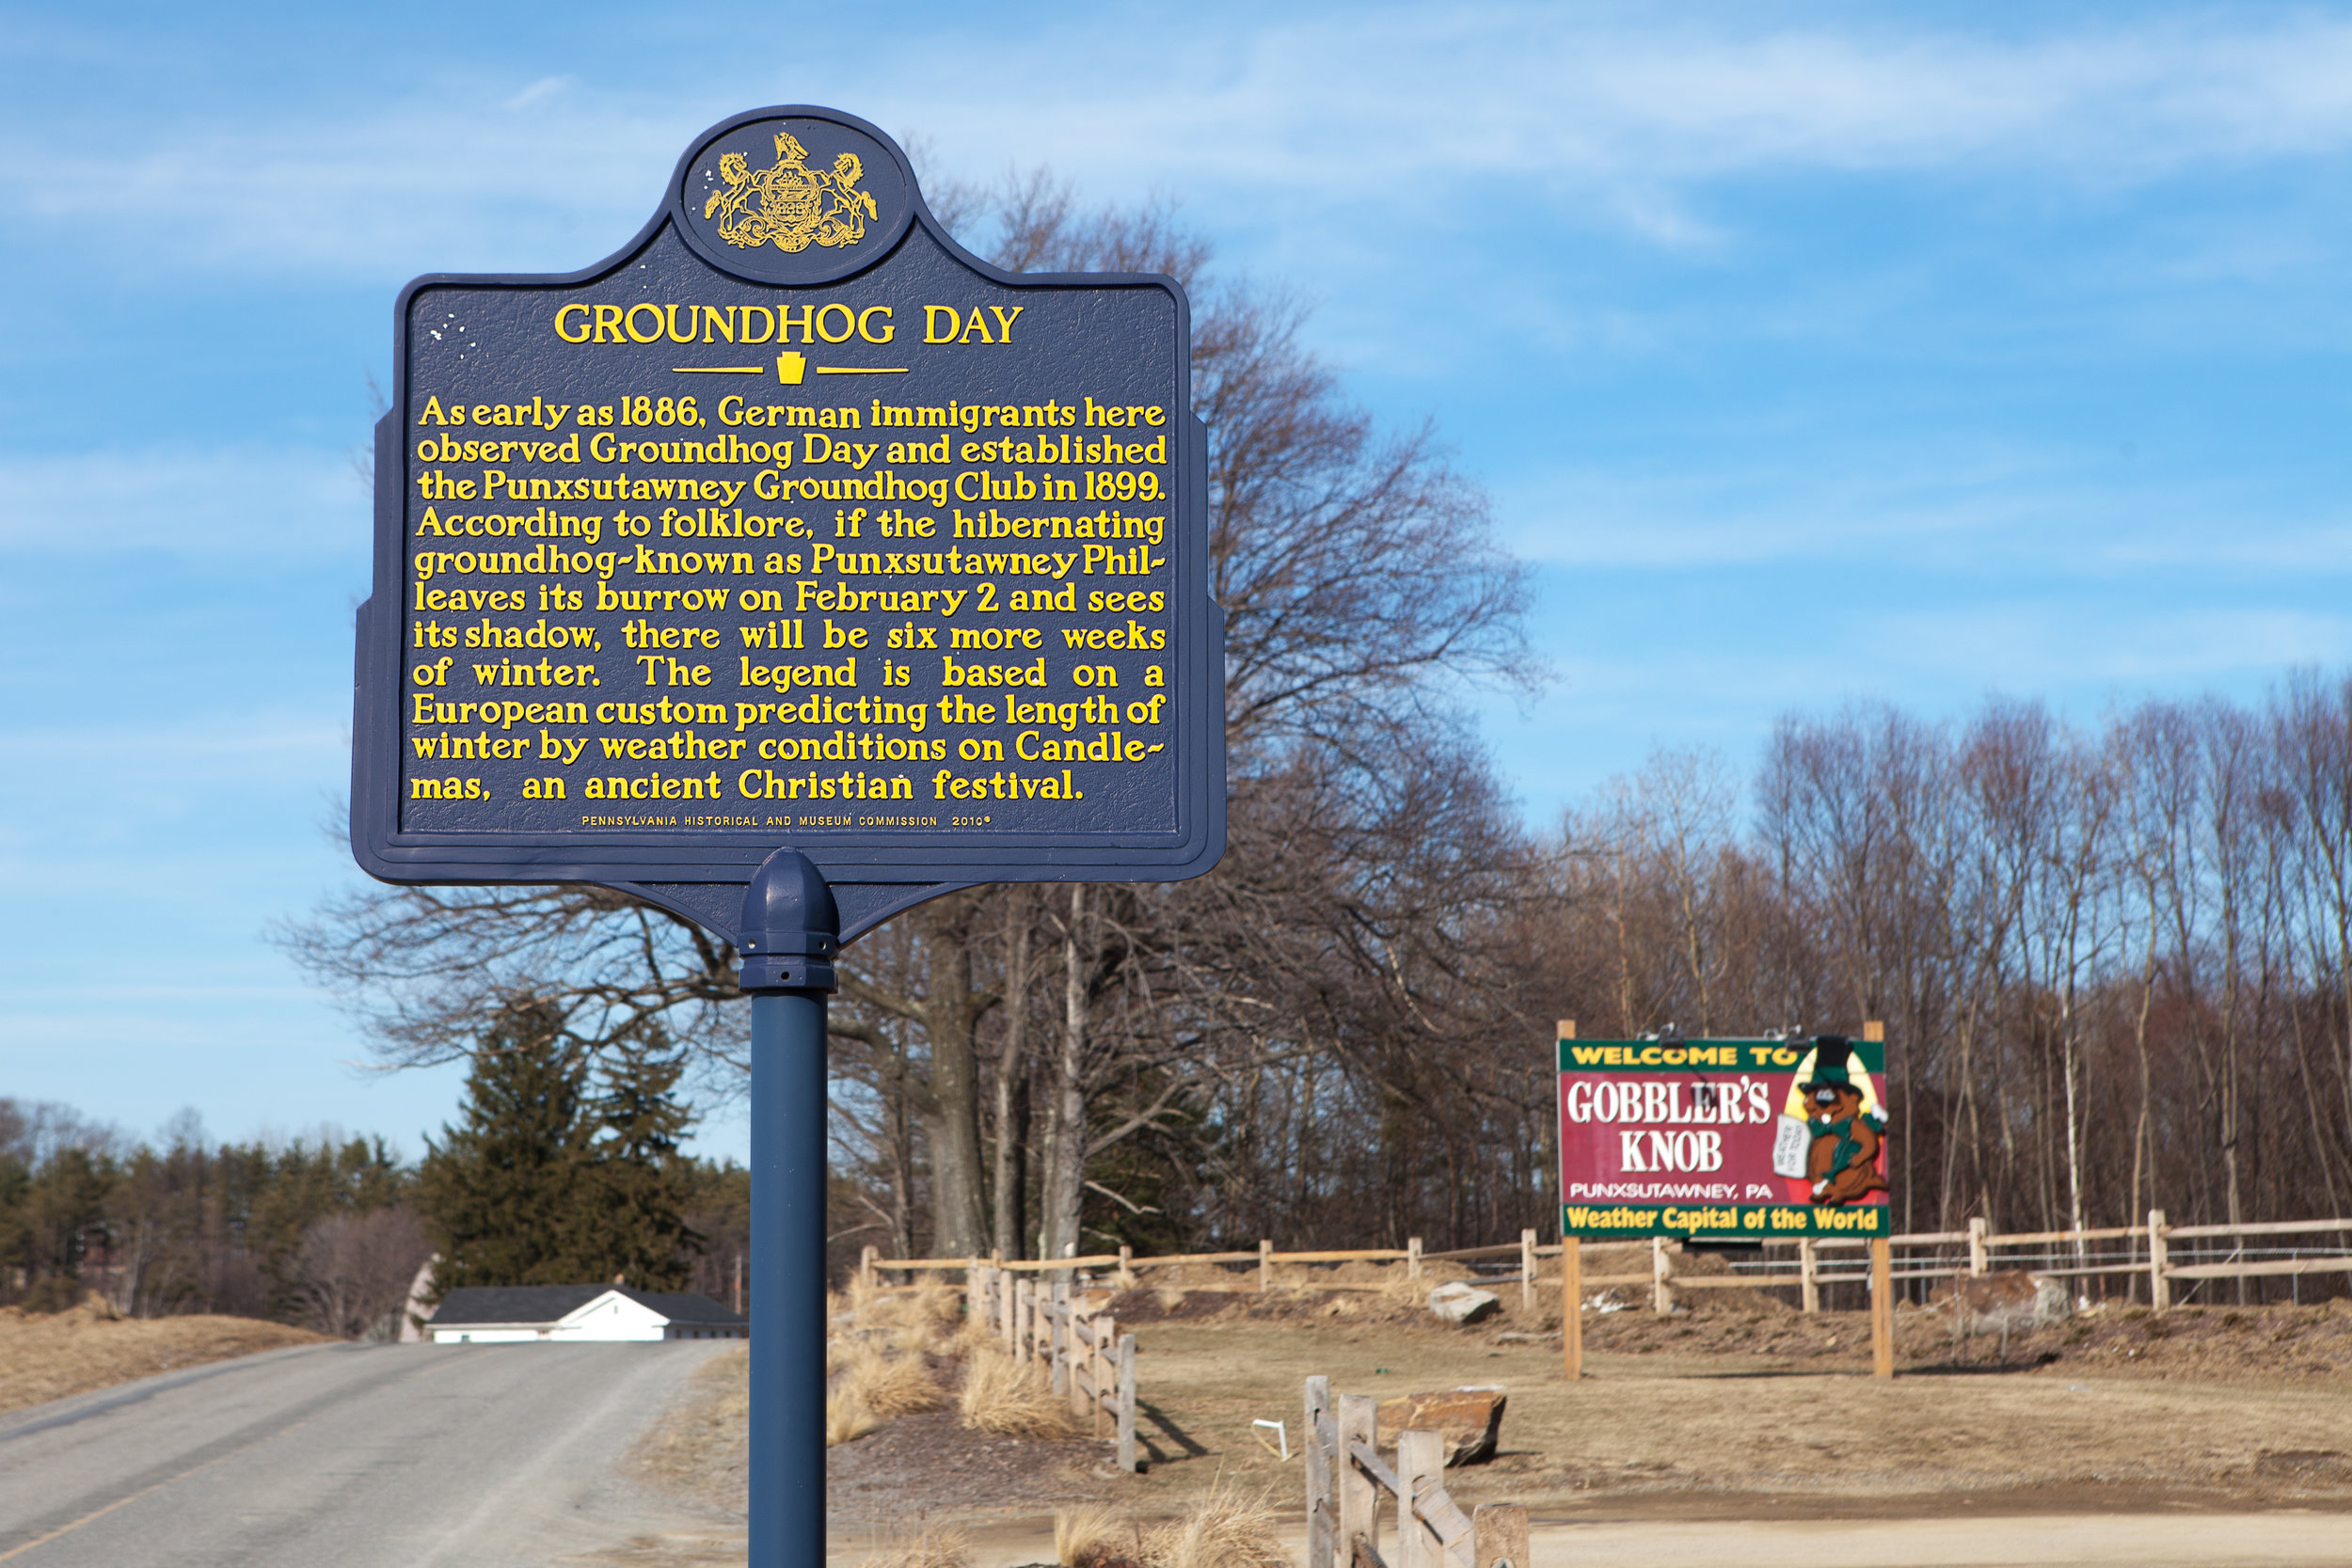 Groundhog Day in the US was first celebrated here in Punxsutawney, PA in the late 1800s.